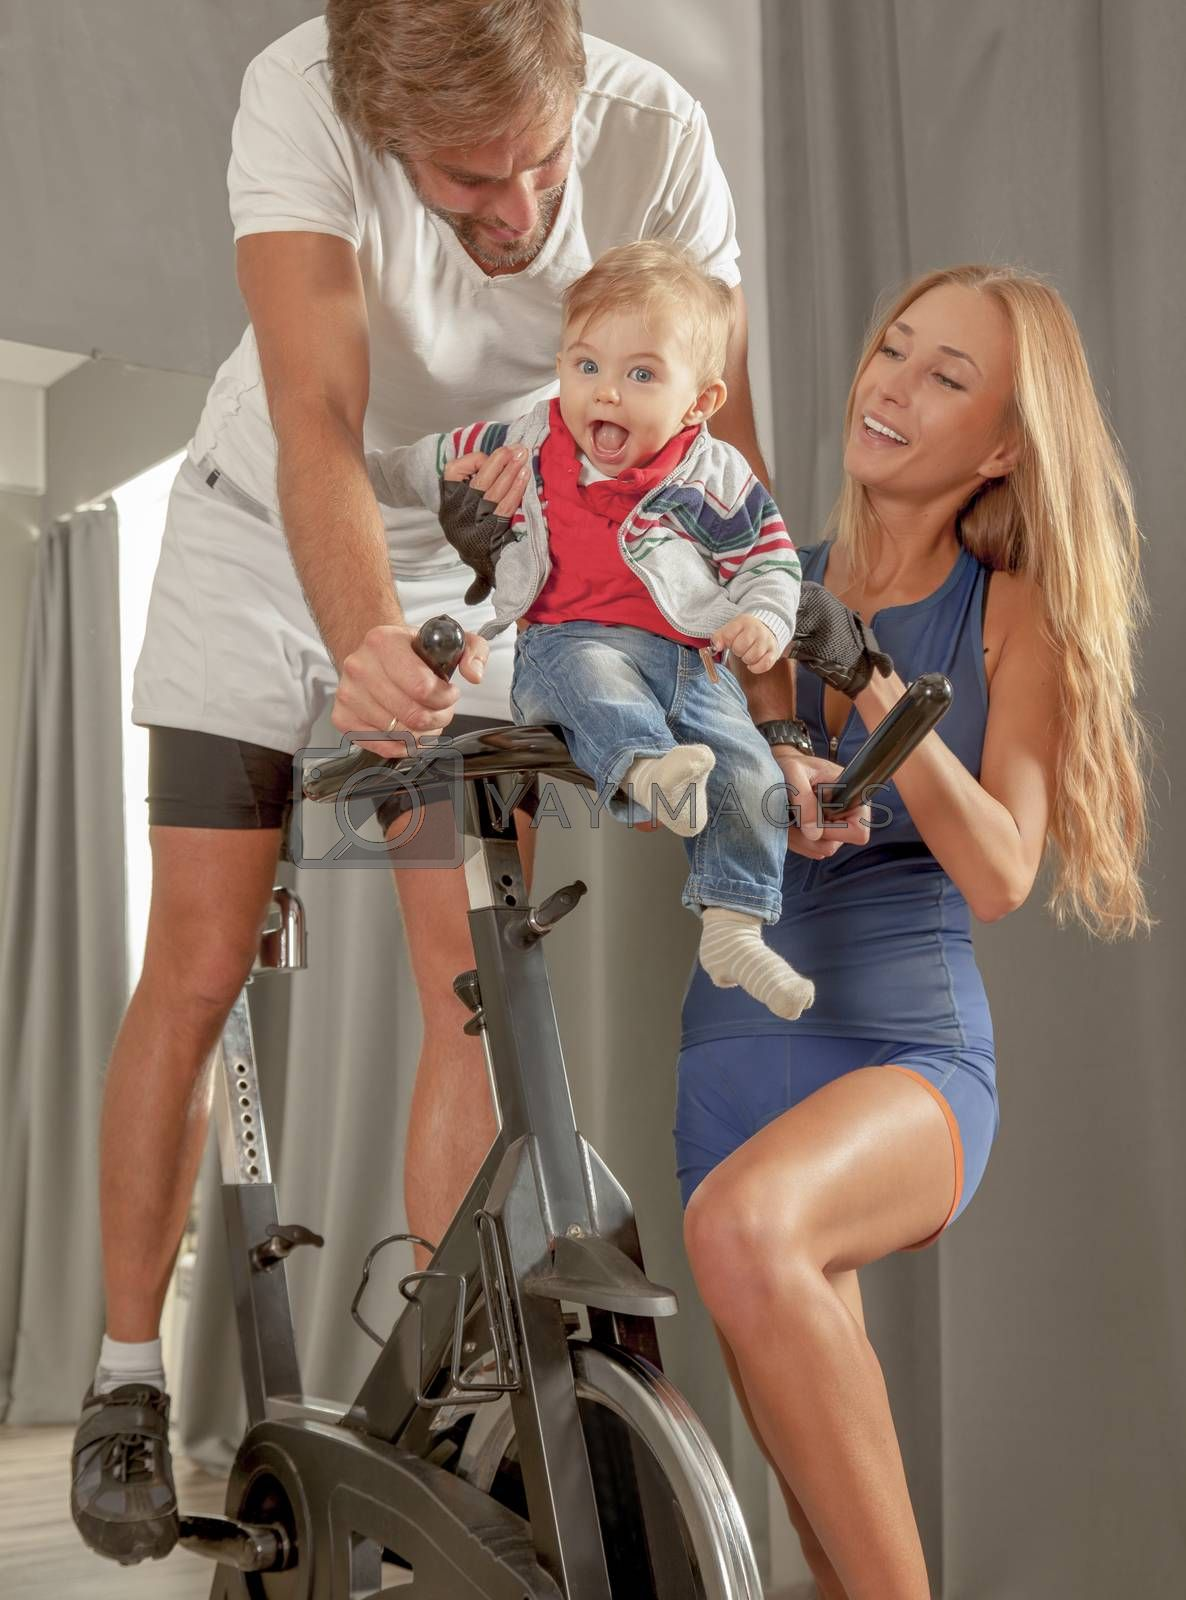 Royalty free image of Family Jim Care Baby Love Cycling by vilevi